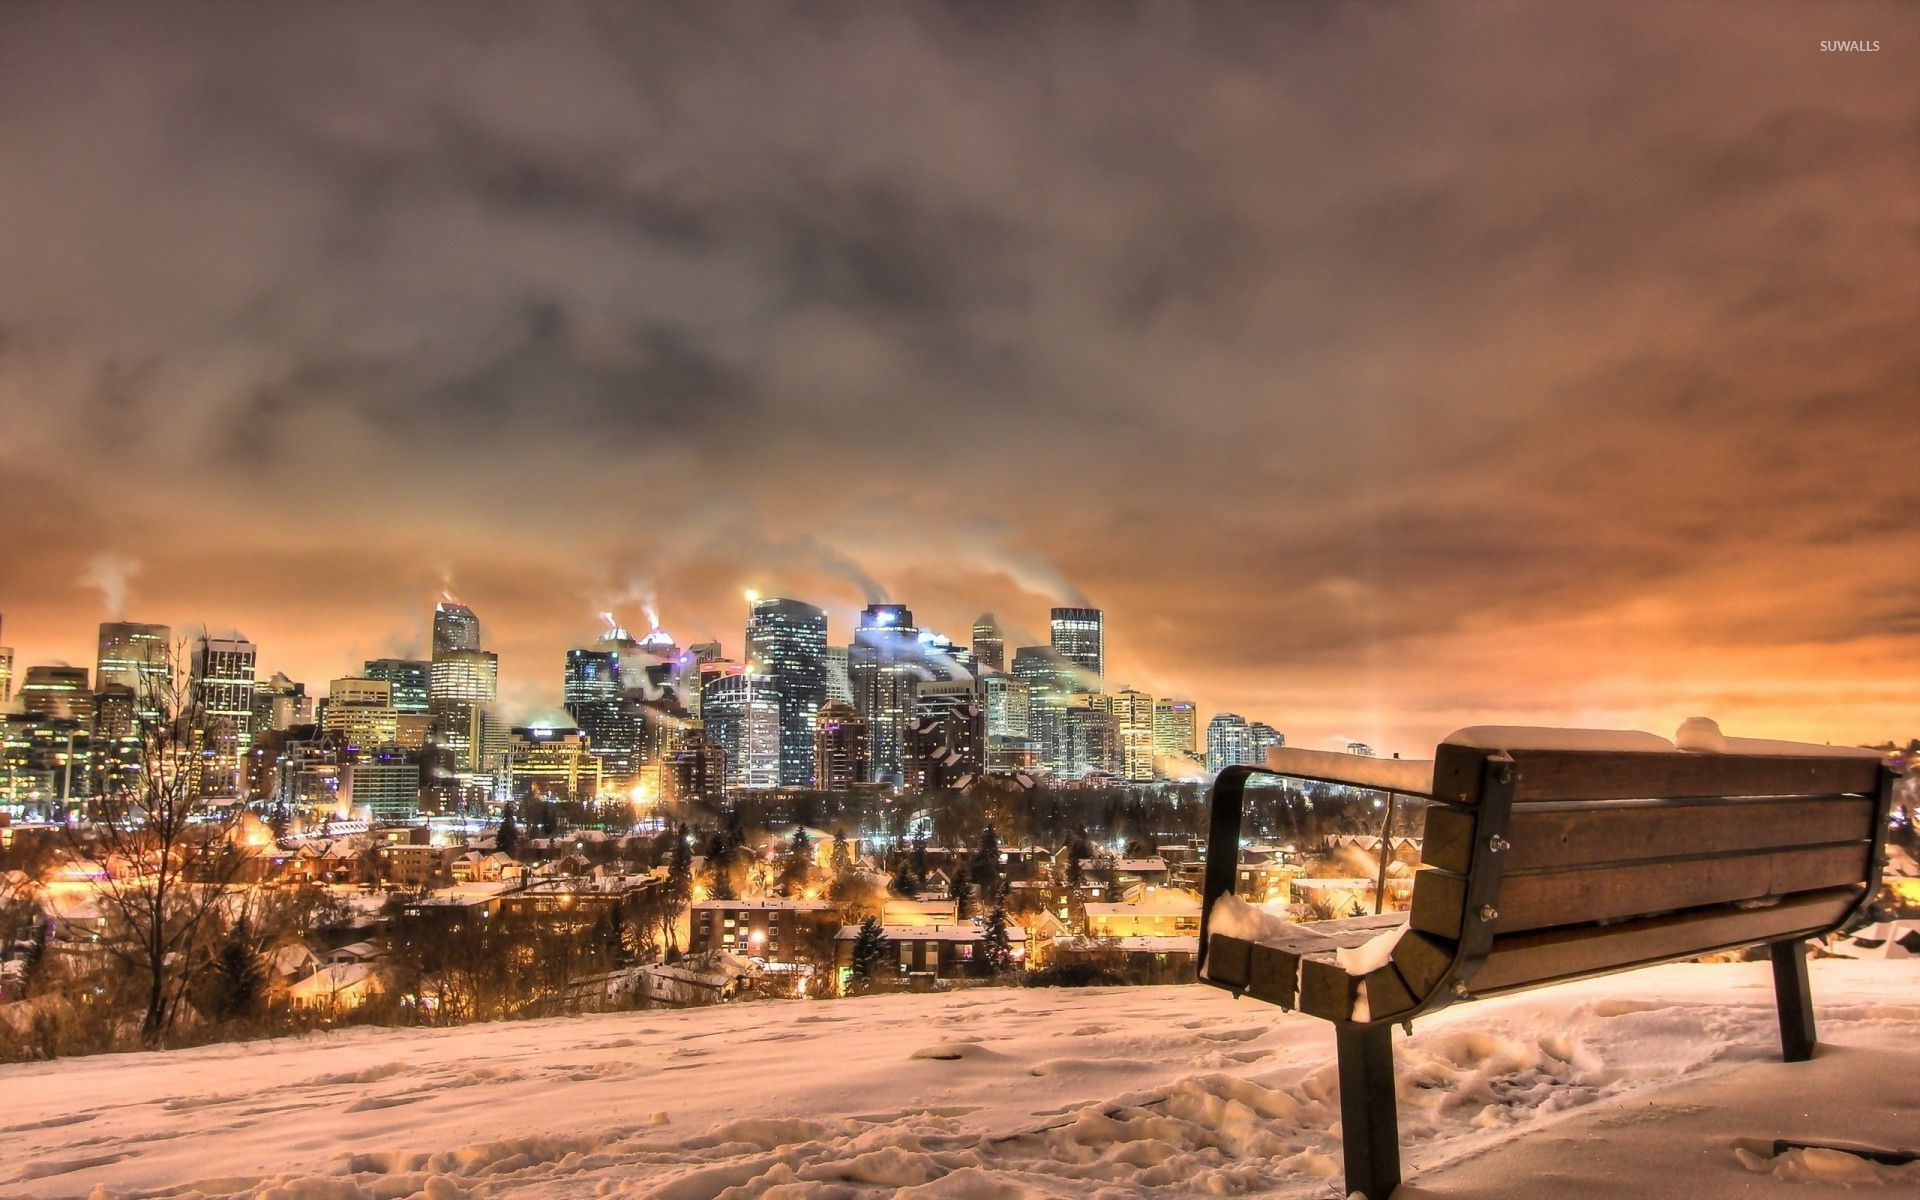 View Of The City From A Bench On The Hill Wallpaper World